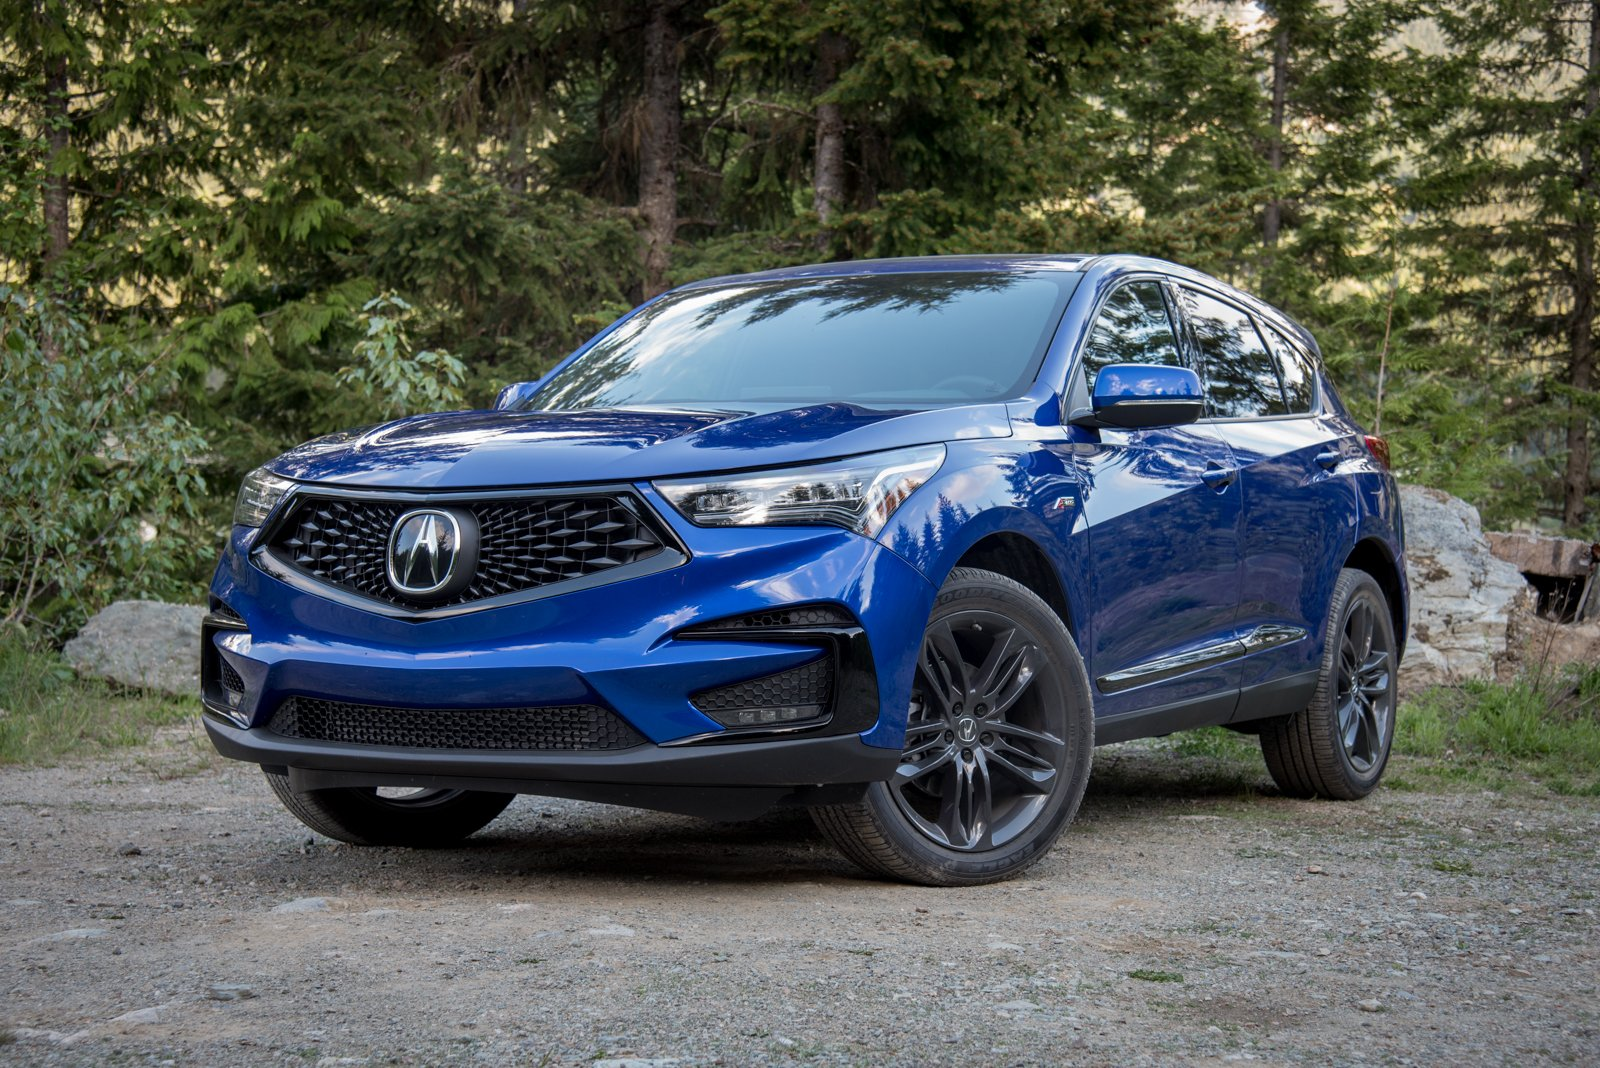 front redo tech review for rdx the article masses better life acura notes a car fit